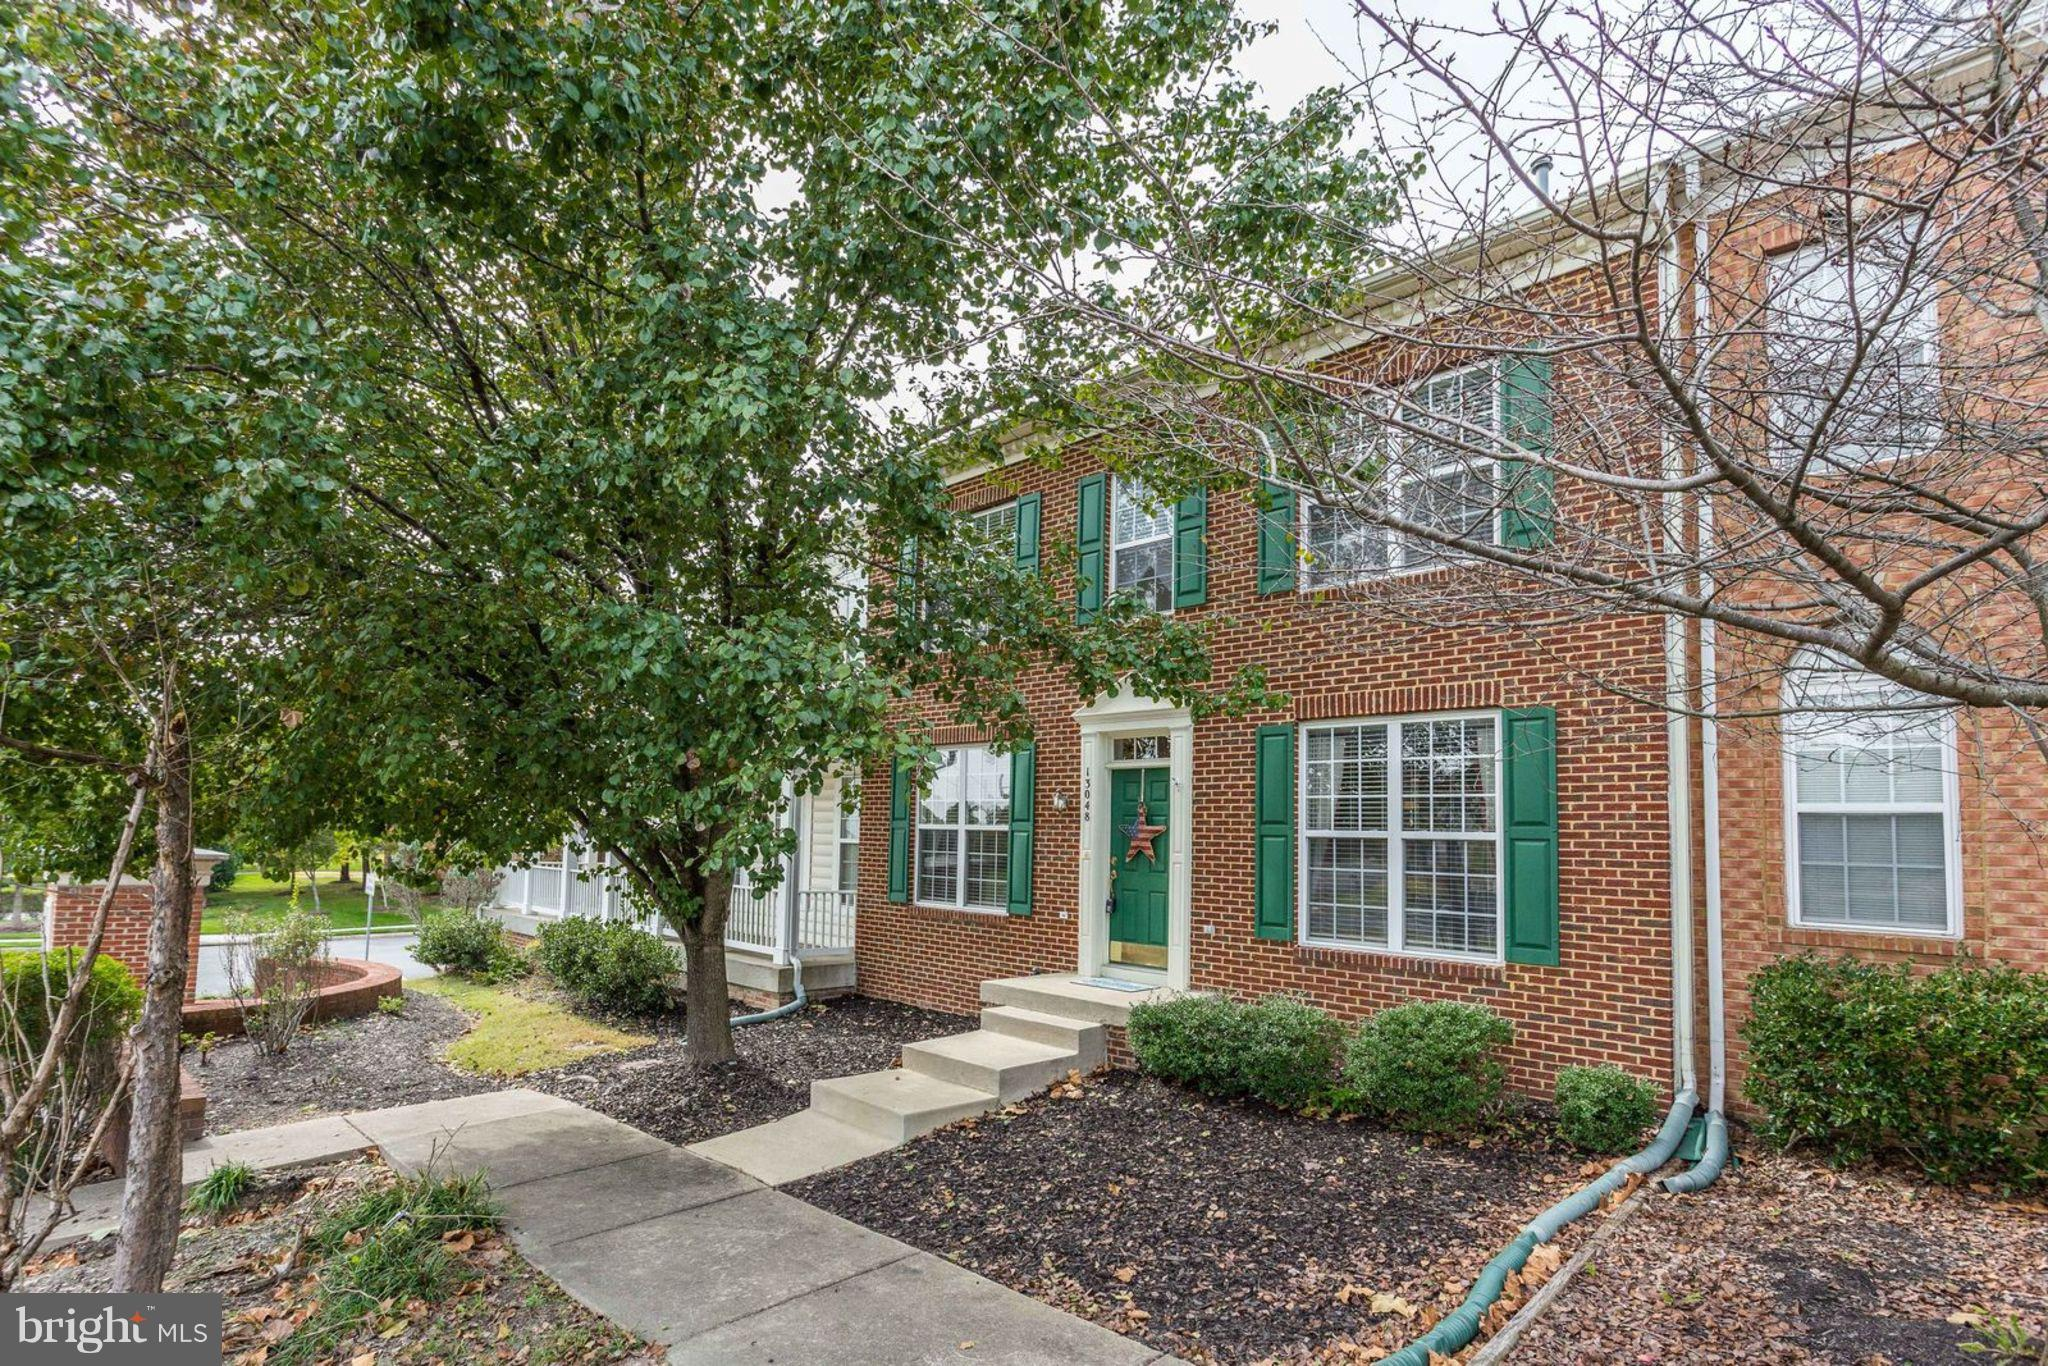 Beautiful MOVE-IN READY brick front townhome! Lives like a single family! Two car garage. Oversized kitchen, family room with cozy fireplace, main level office, 4 upper level bedrooms. New HVAC, appliances and paint. Great commuter location, this light-filled home is close to the Bus and Commuter Lot.